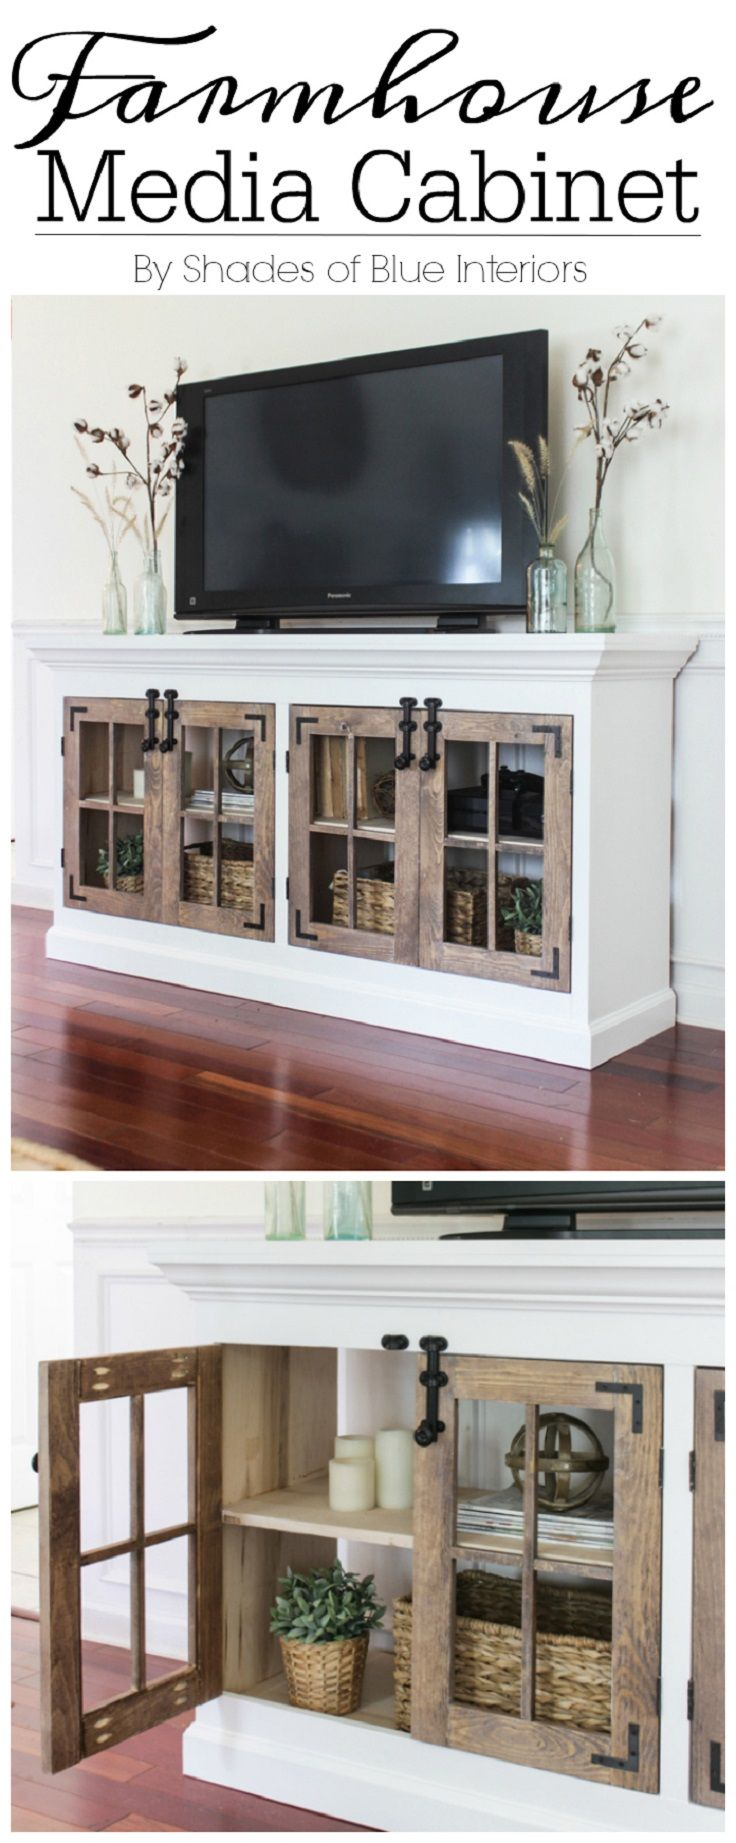 Farmhouse Media Cabinet Free Plan